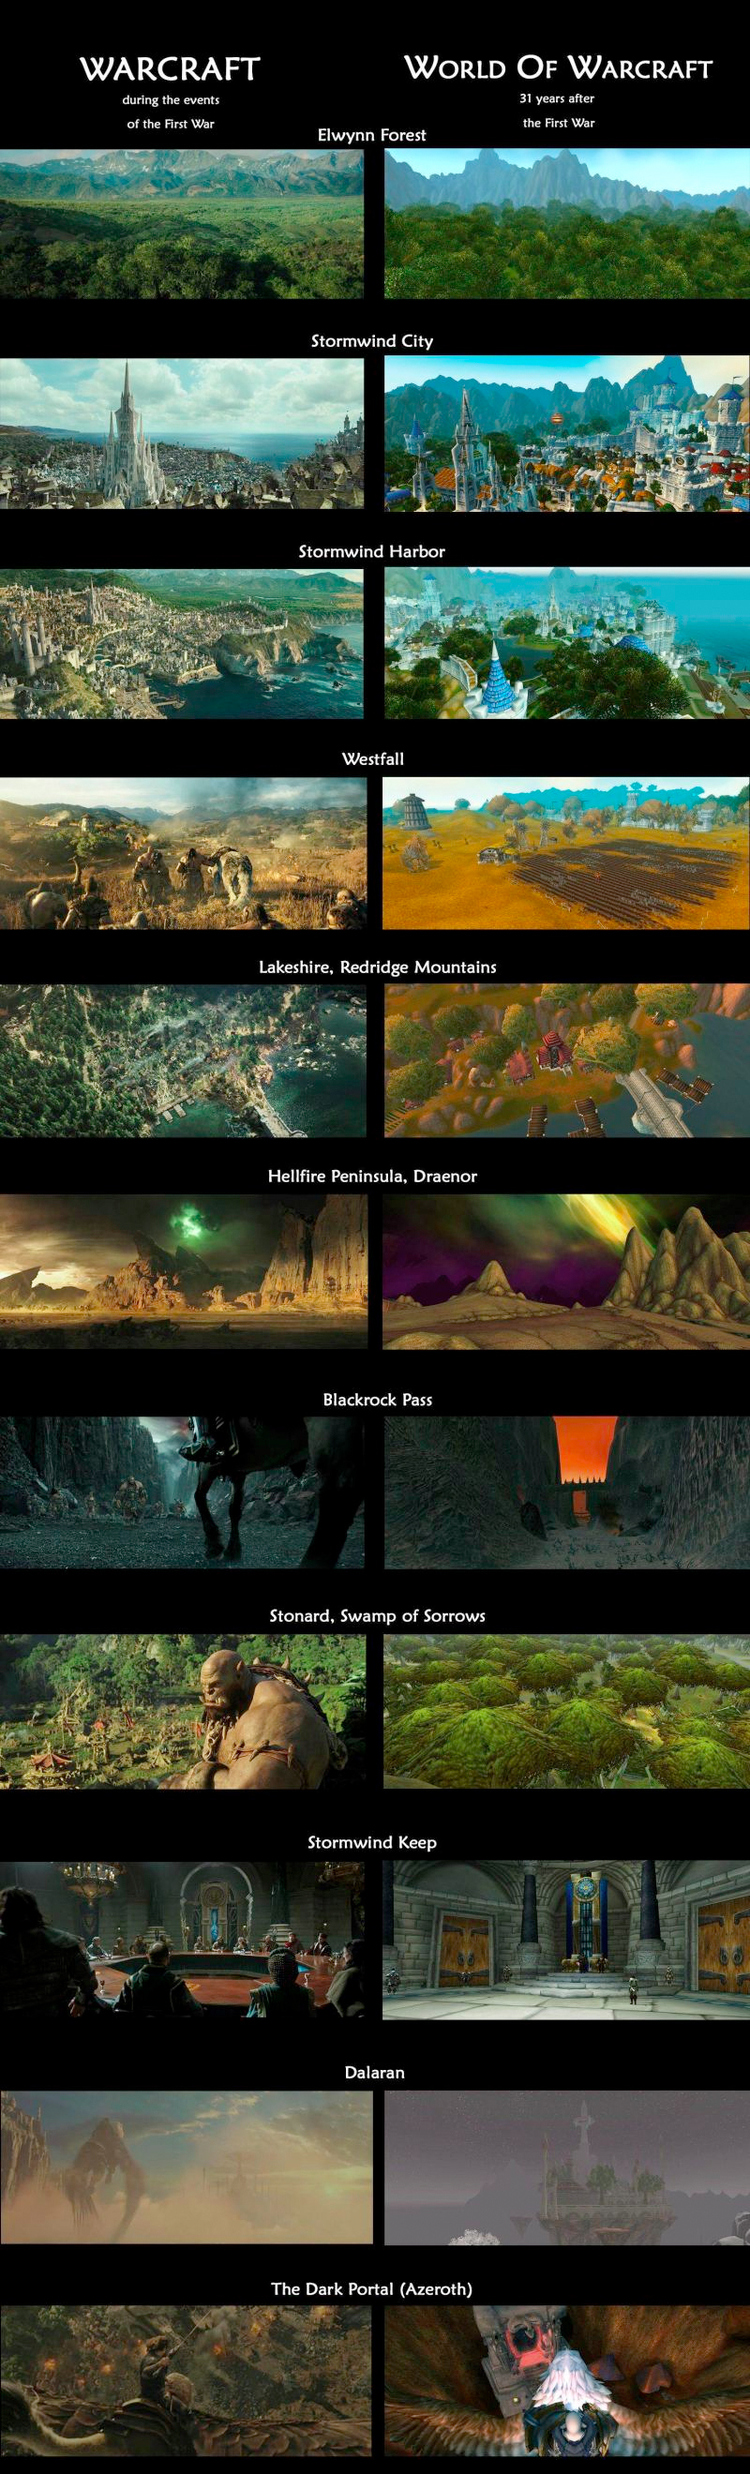 visual-comparisons-between-the-warcraft-movie-imagery-and-the-game